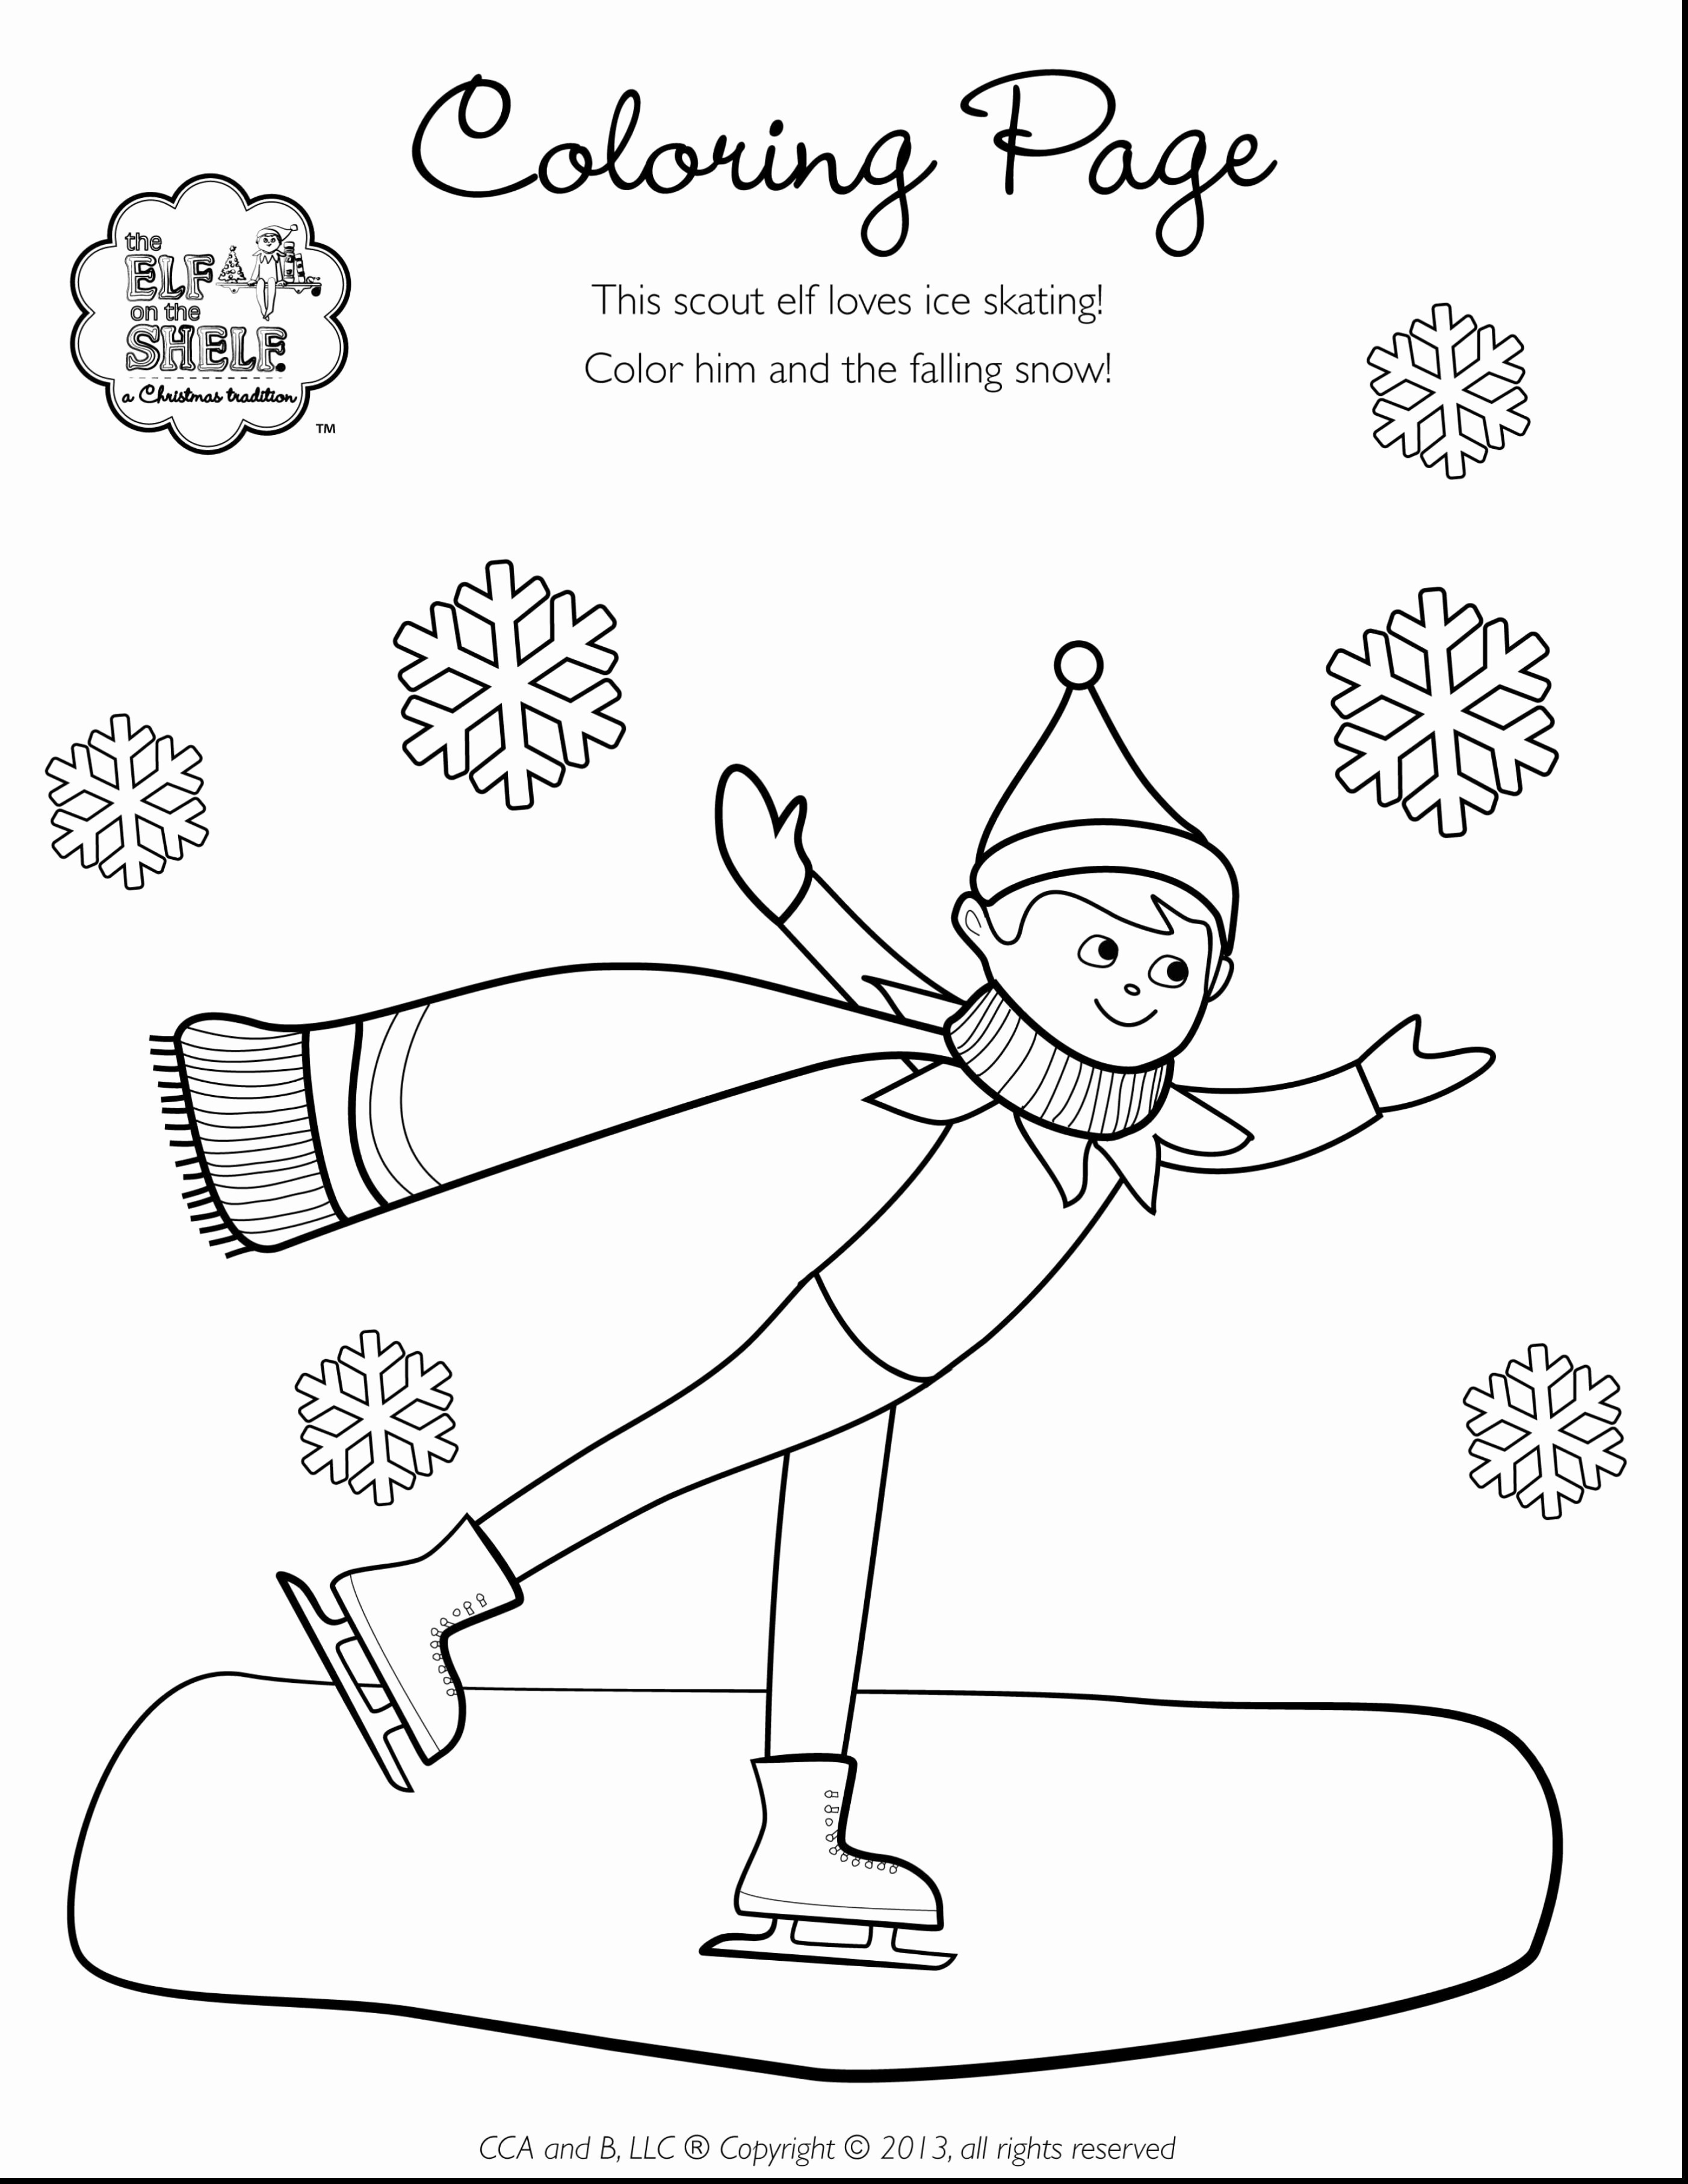 Lego Christmas Coloring Pages With Elf On The Shelf Refrence